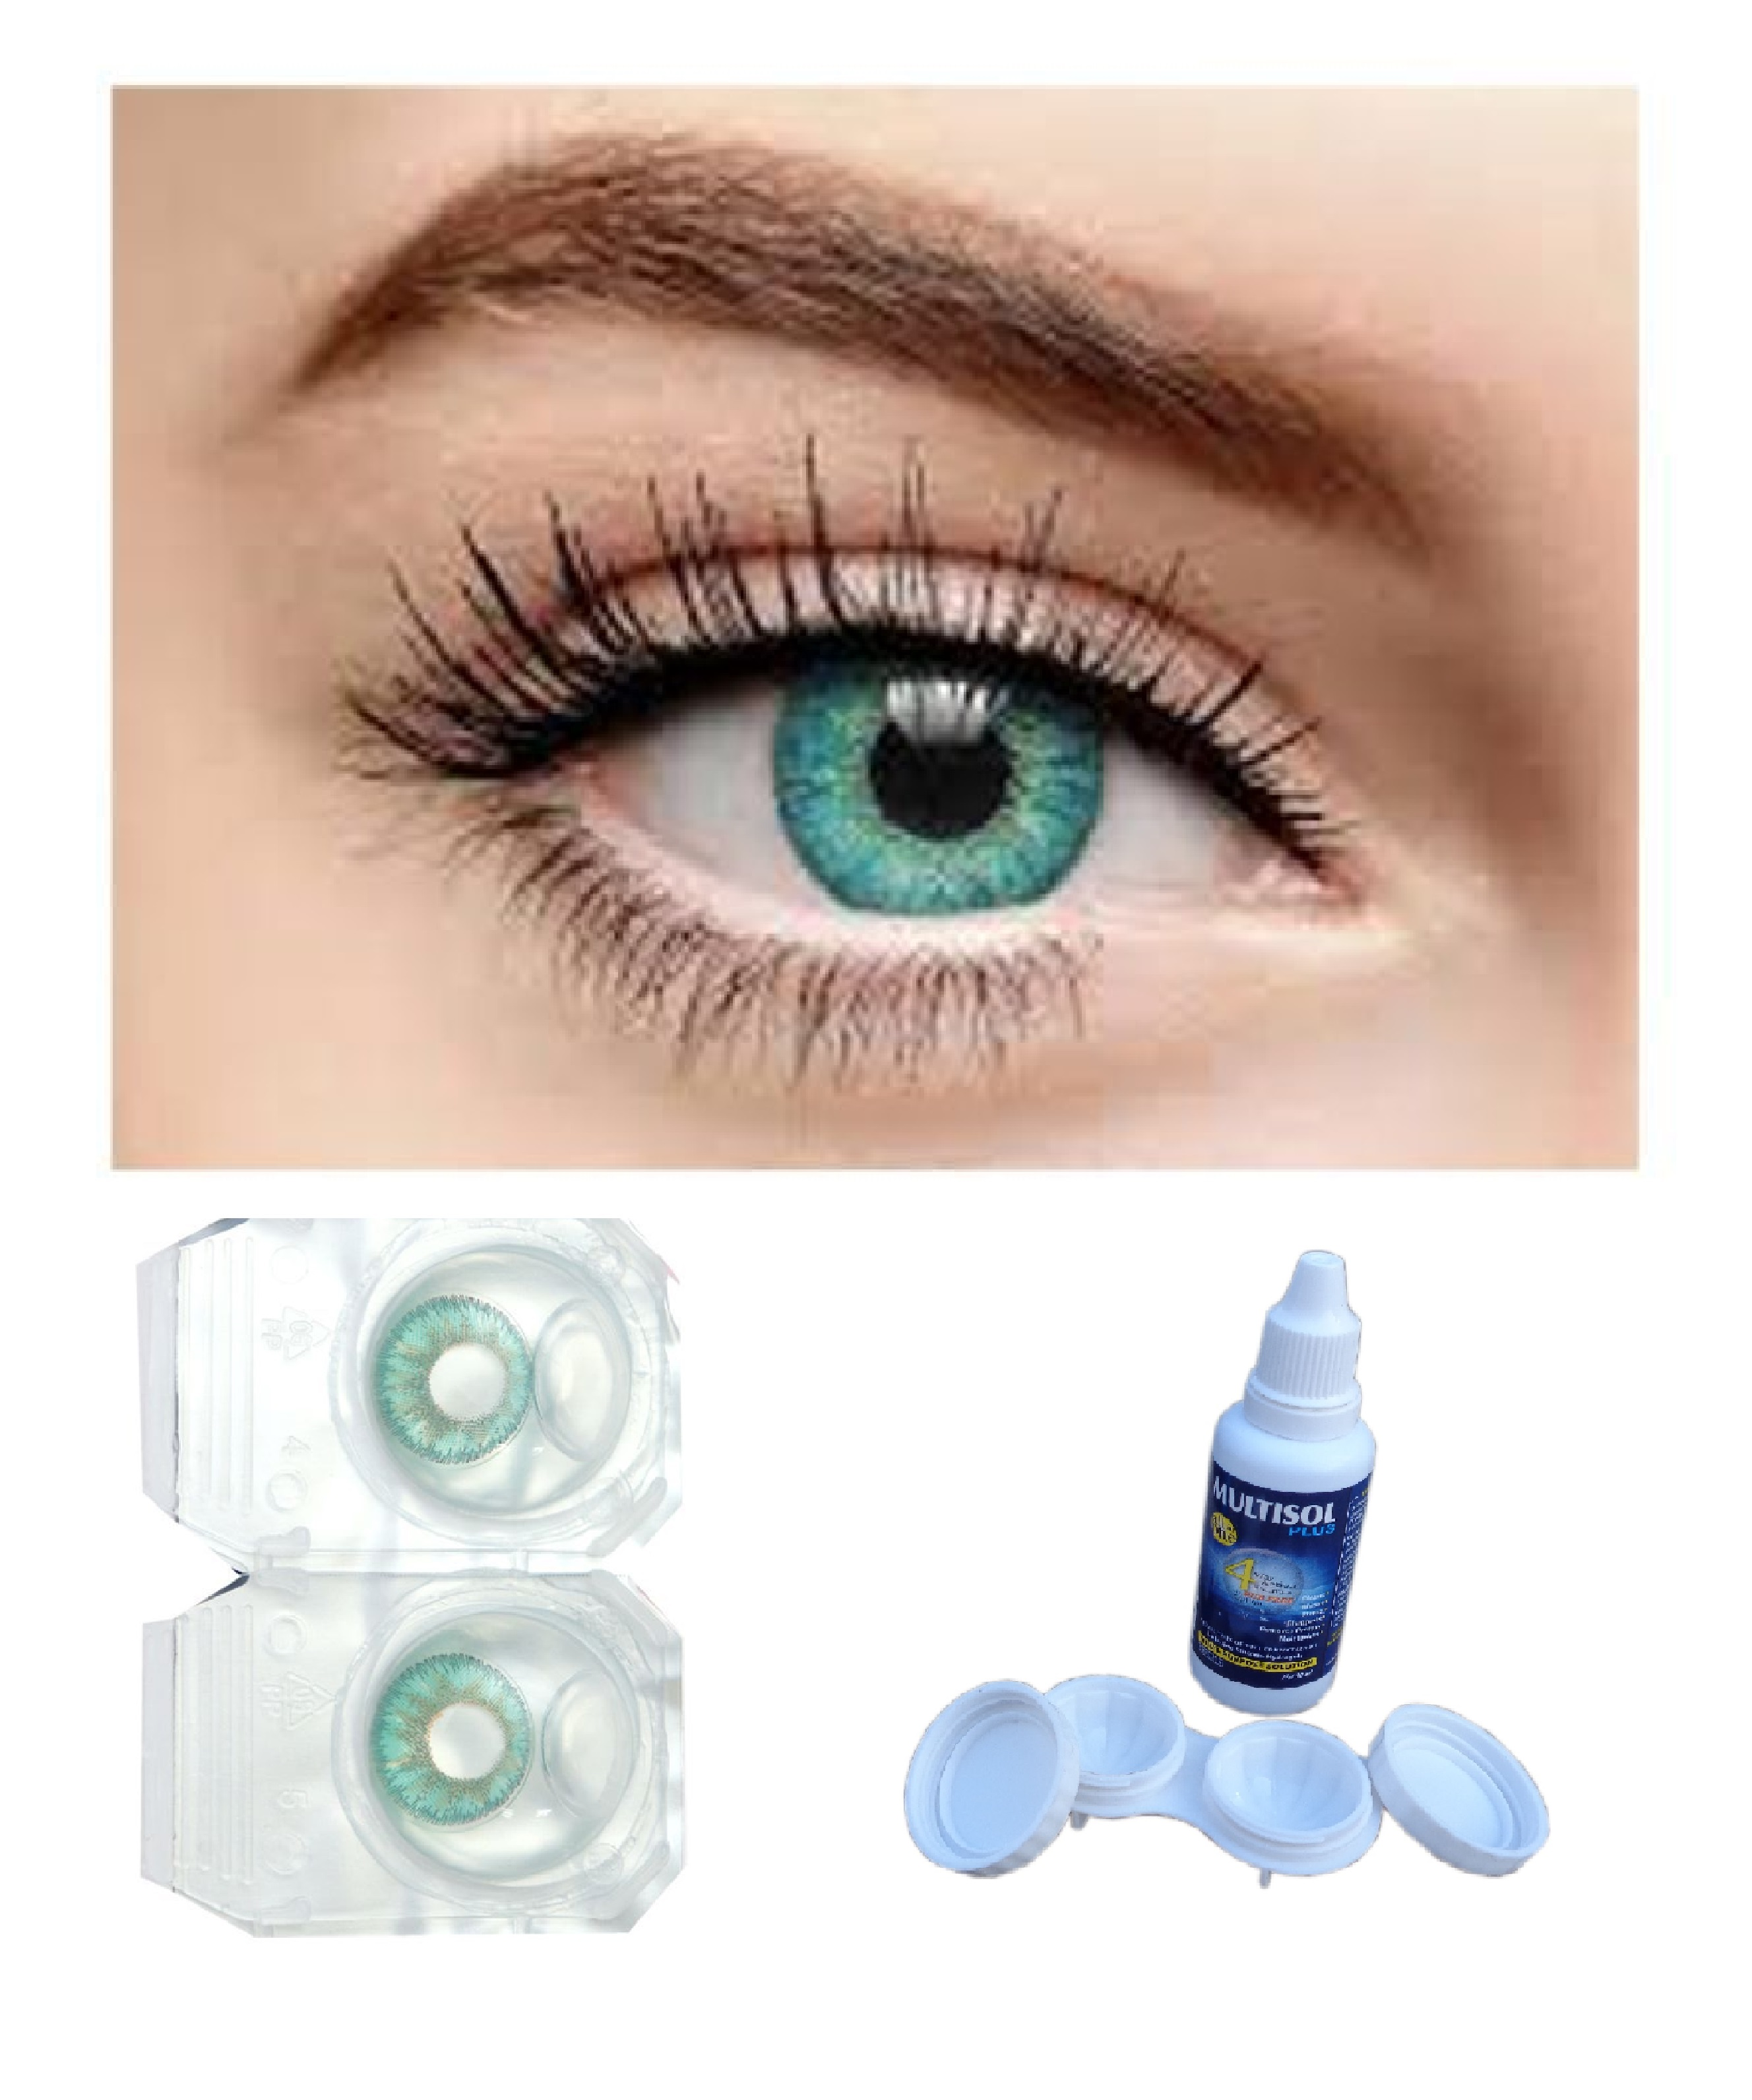 Ekavir Eye Colored Contact Lenses, 0 Power Weekly disposable convenience for fresh lens every day, (Green color )